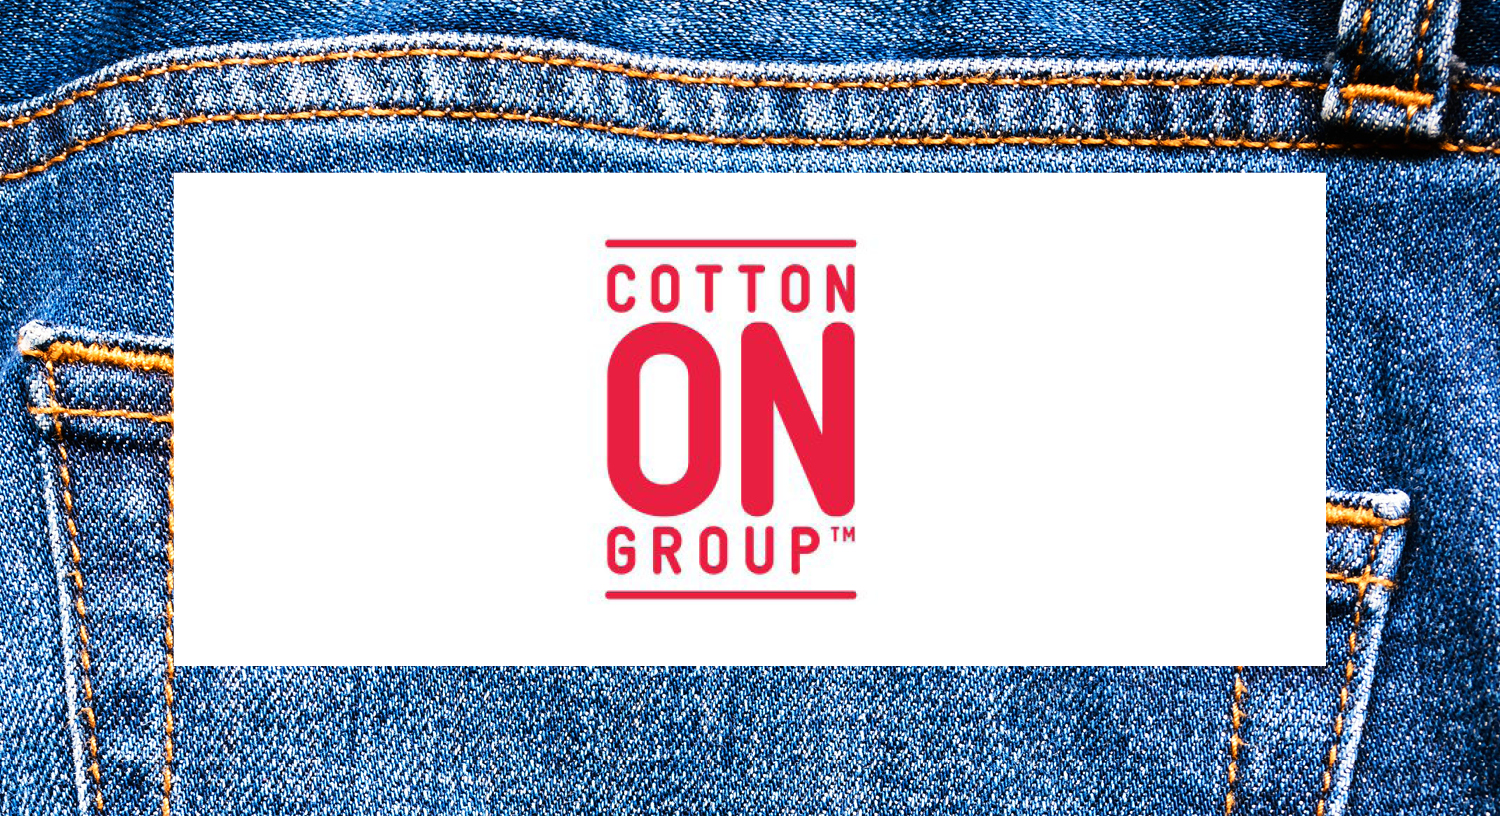 The Cotton On Group Case Study